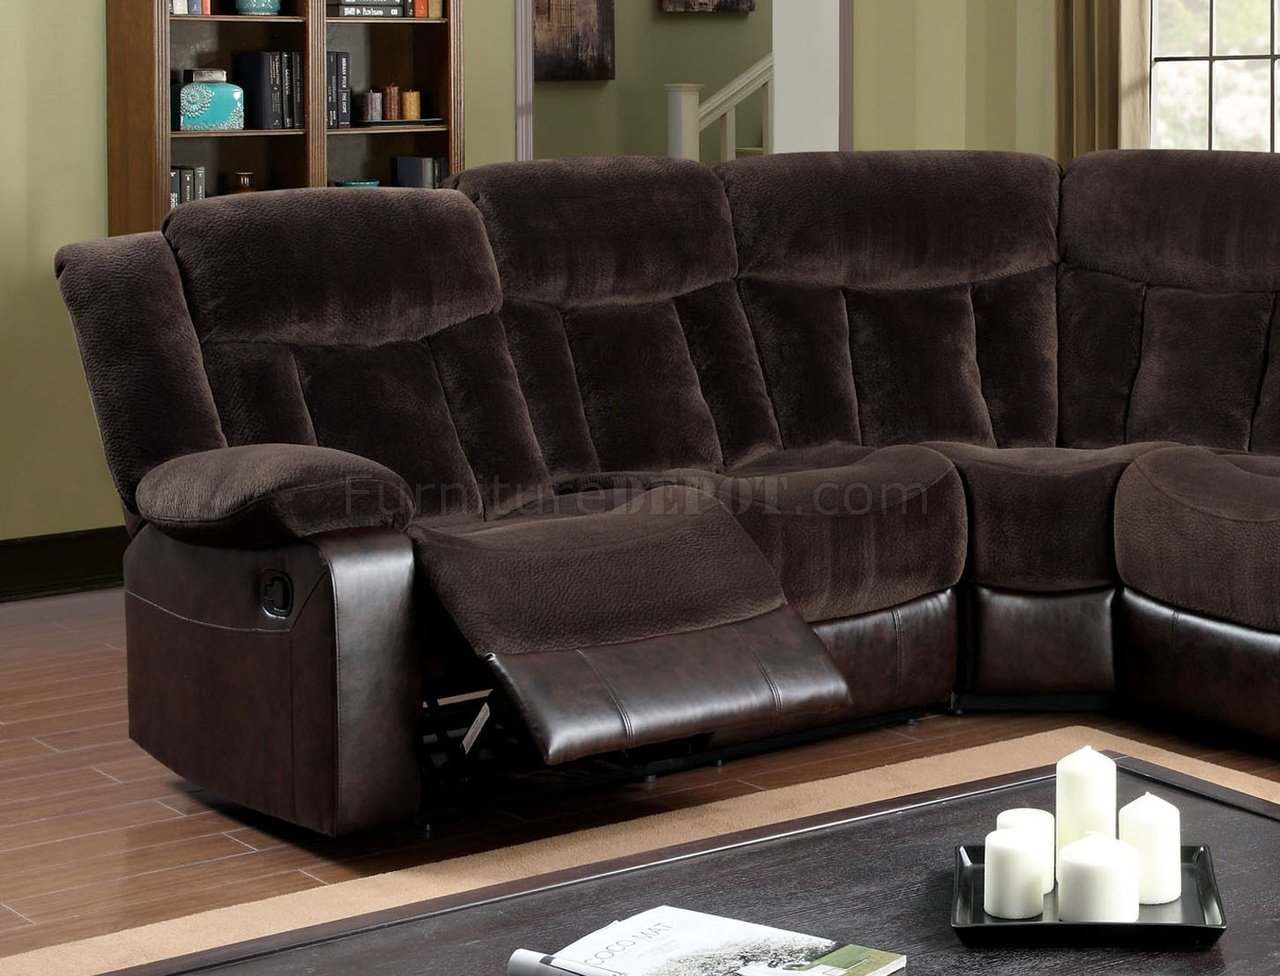 Hampshire Reclining Sectional Sofa CM6809 in Brown Fabric